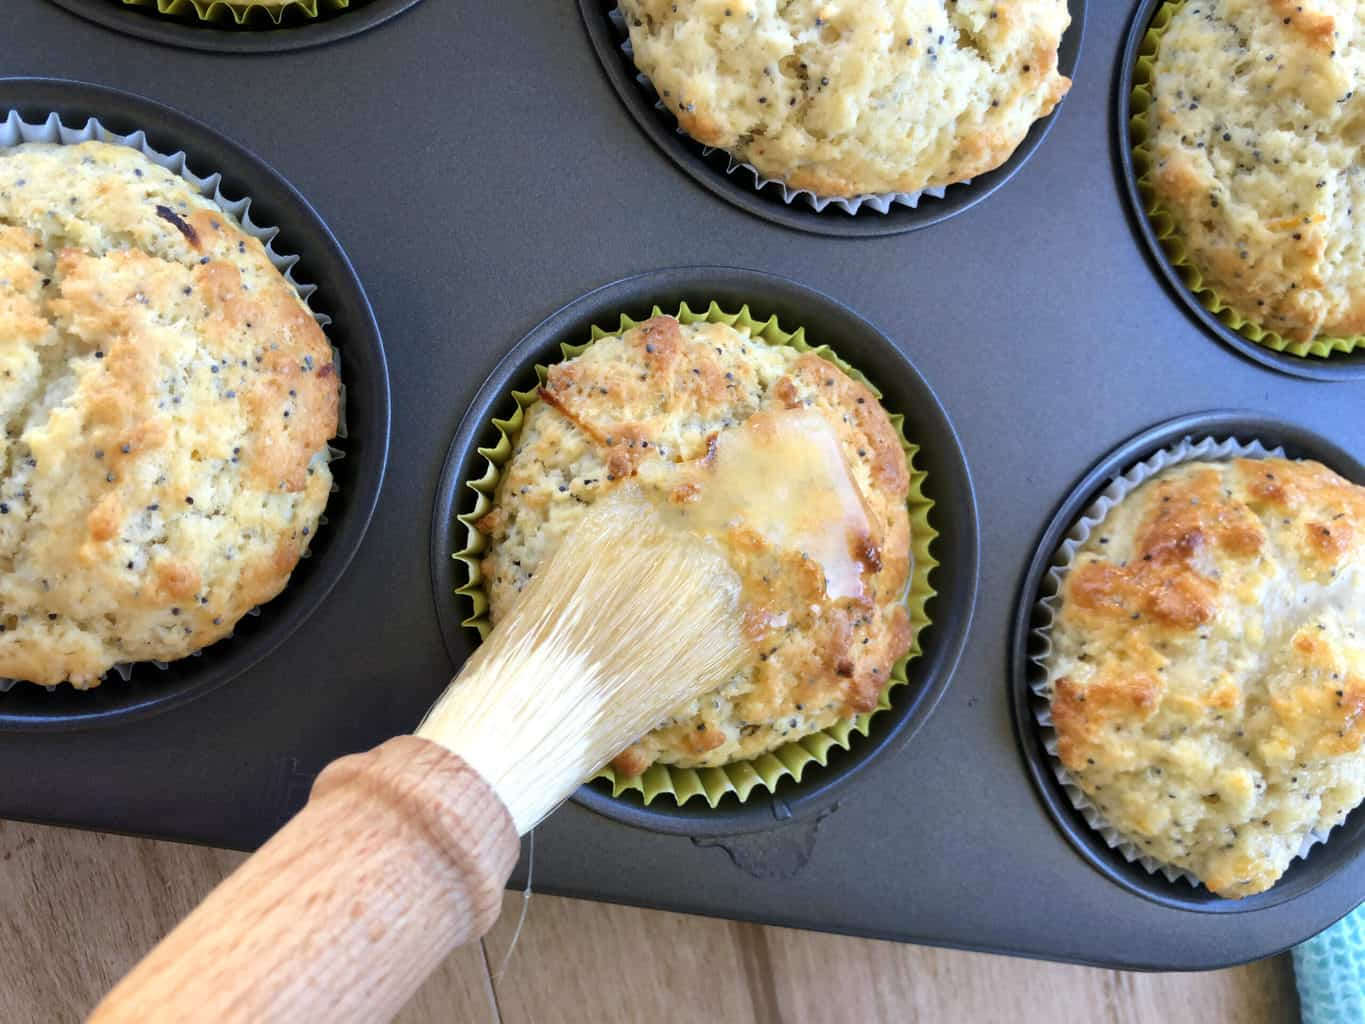 Baked muffins being spread with glaze with a pastry brush